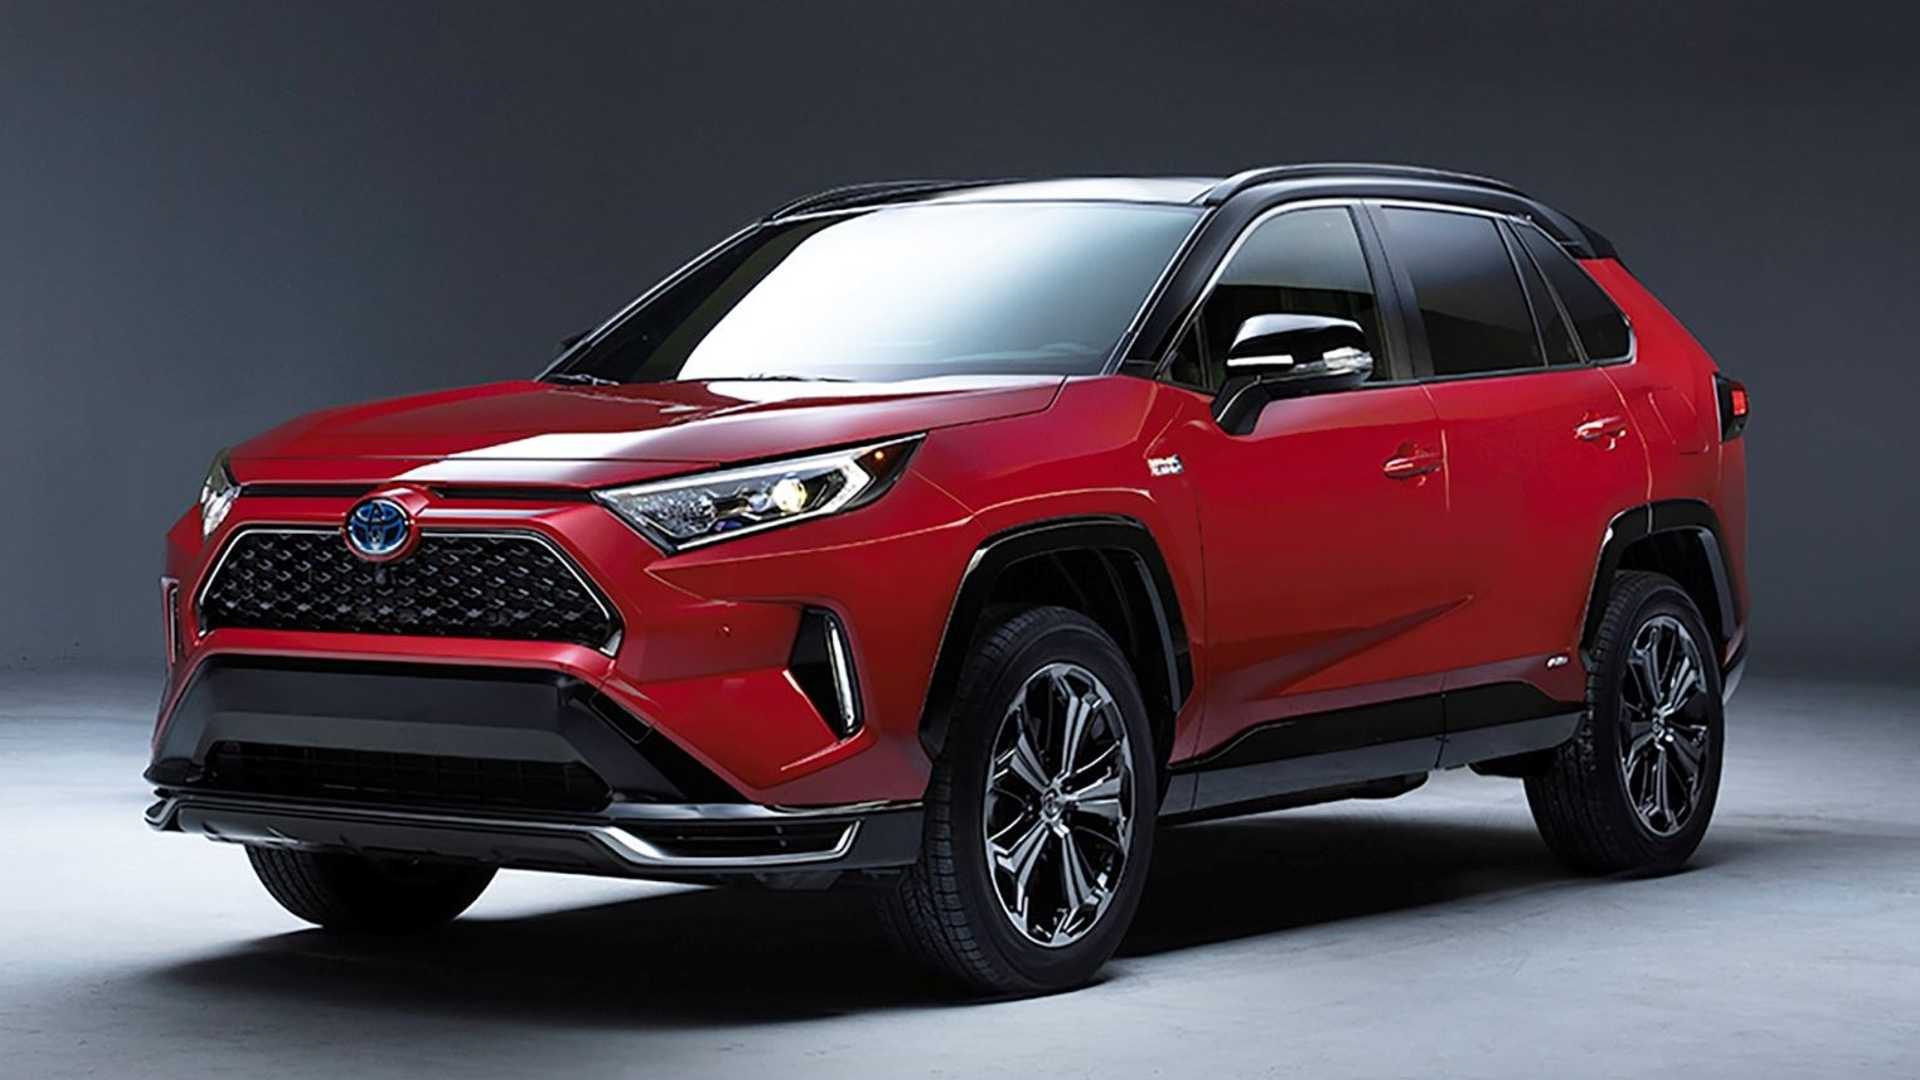 Will The New Toyota RAV4 PHEV Offer 40-Plus Miles Of Electric Range?